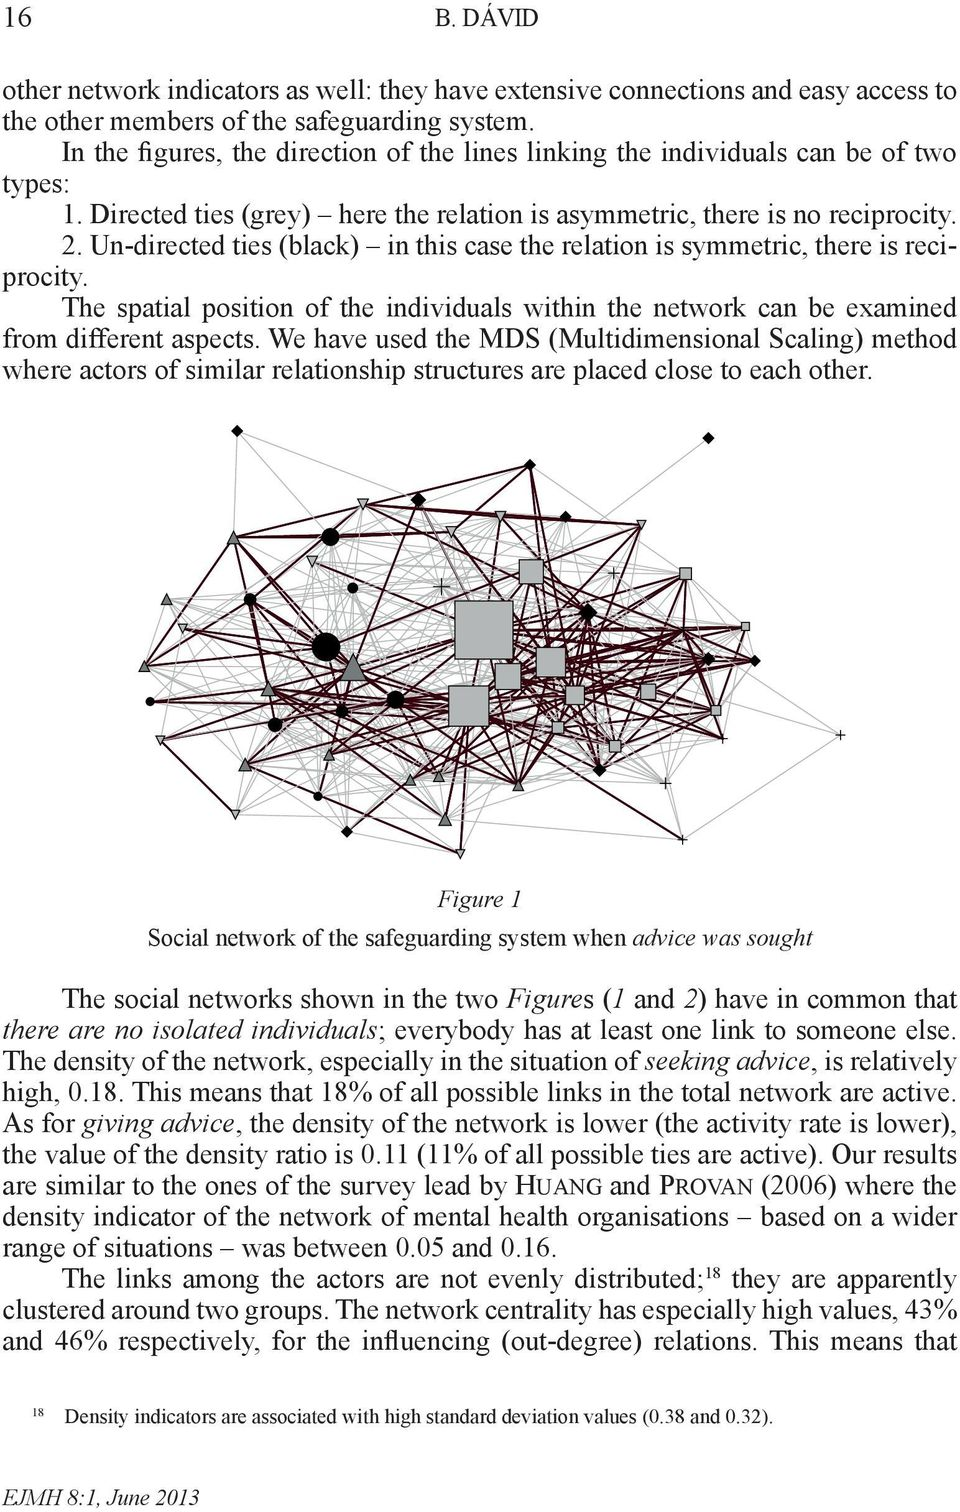 Un-directed ties (black) in this case the relation is symmetric, there is reciprocity. The spatial position of the individuals within the network can be examined from different aspects.